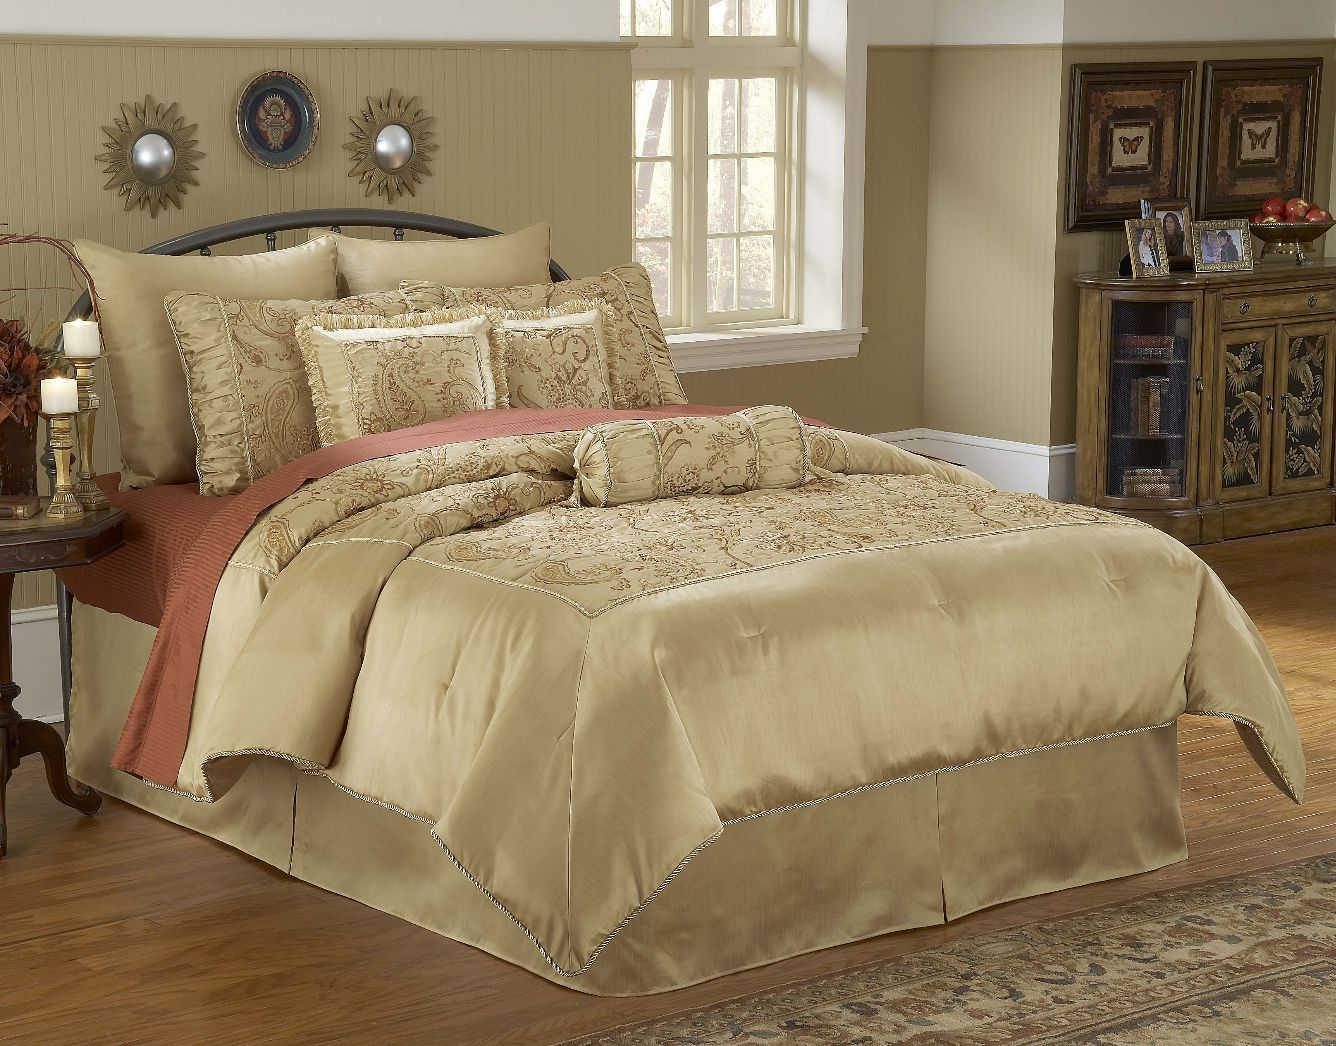 Elegant Bedspreads   luxury comforter sets in Queen 9 pc and King 11 pc sets. Elegant Bedspreads   luxury comforter sets in Queen 9 pc and King